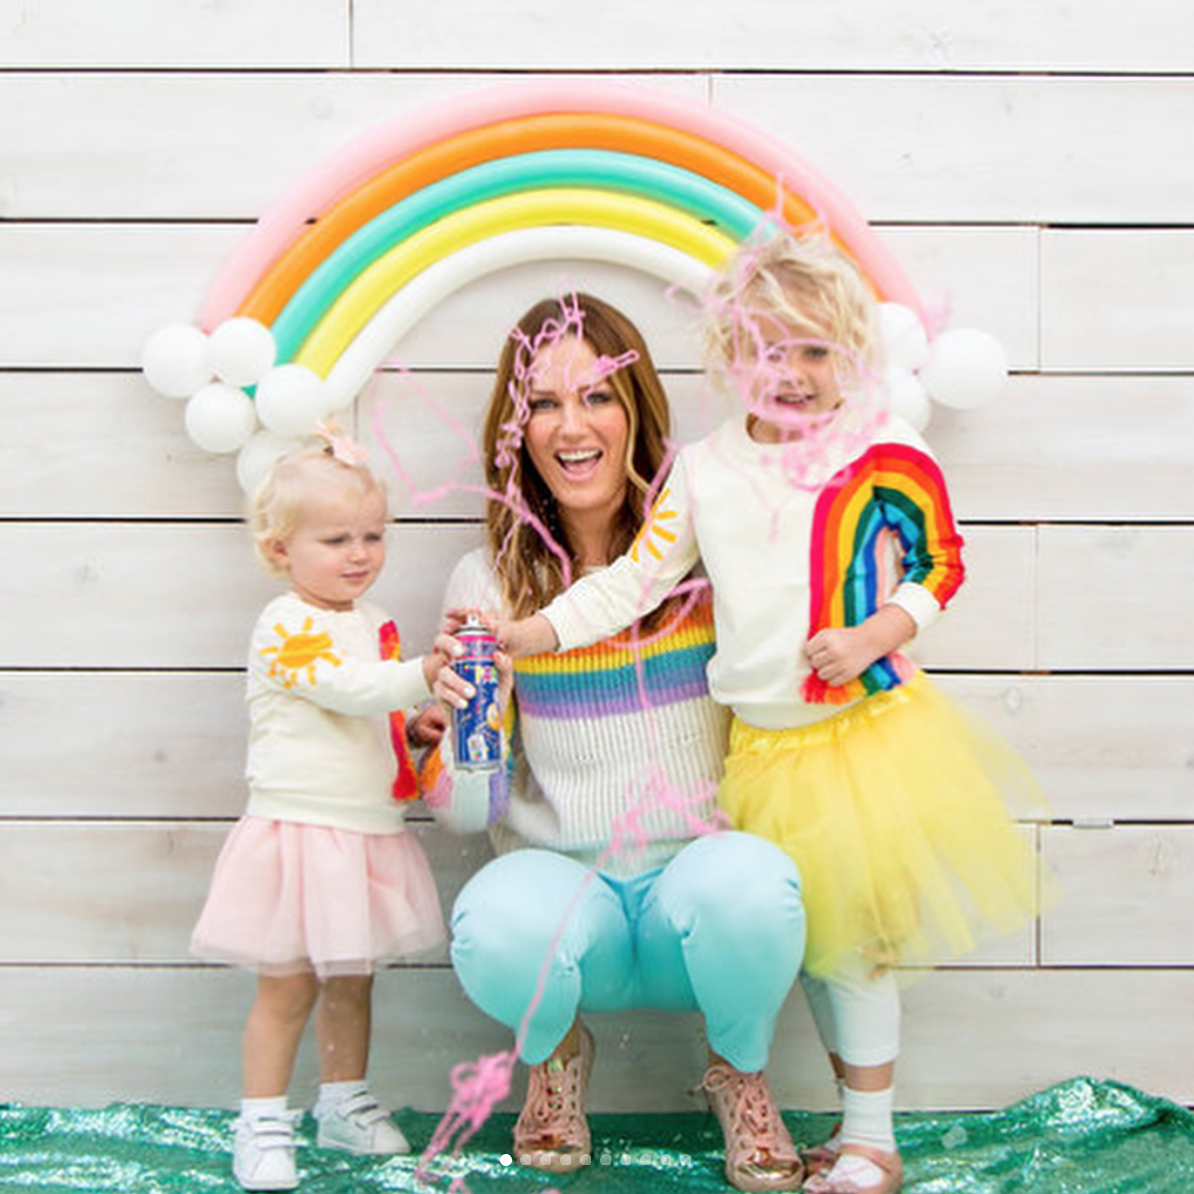 BASHERY & CO.   A mama who Always Brings the Fun Party Styling co. & Content Creator by Pamelyn Rocco.   WEBSITE  |  INSTAGRAM